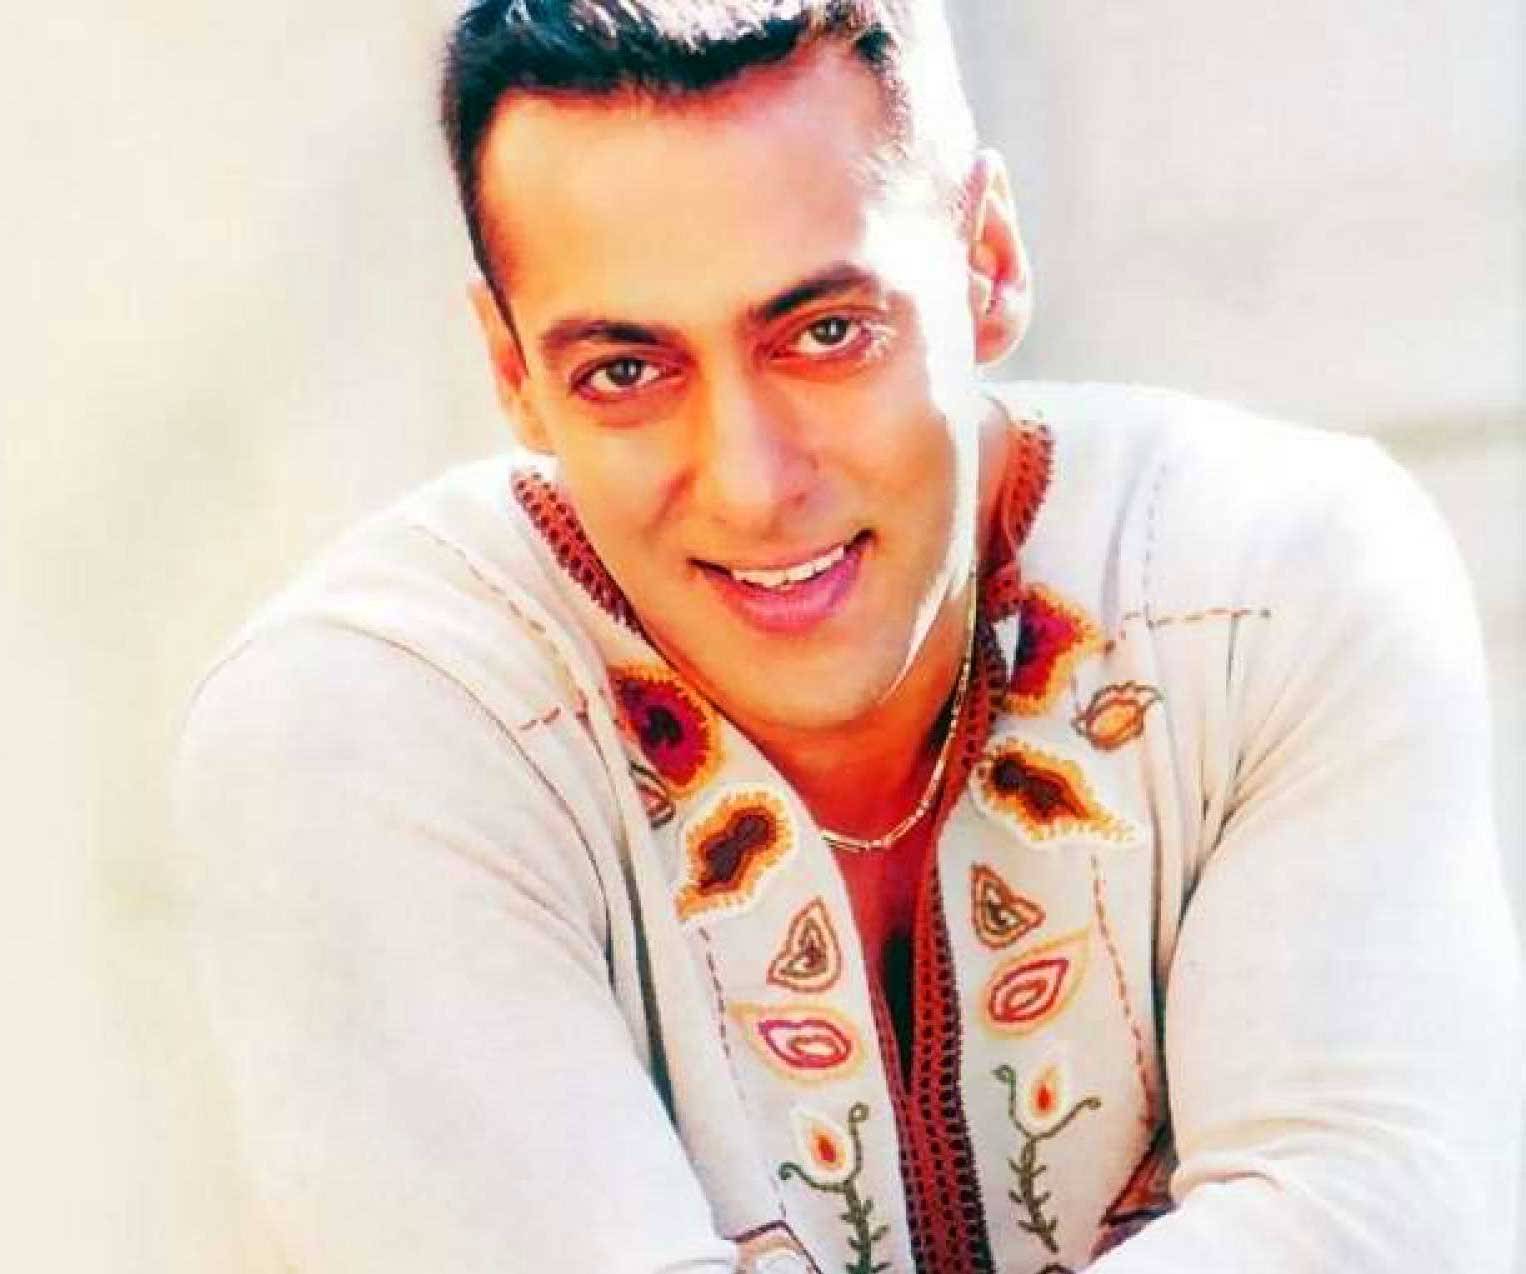 Salman Khan Images HD Free 51